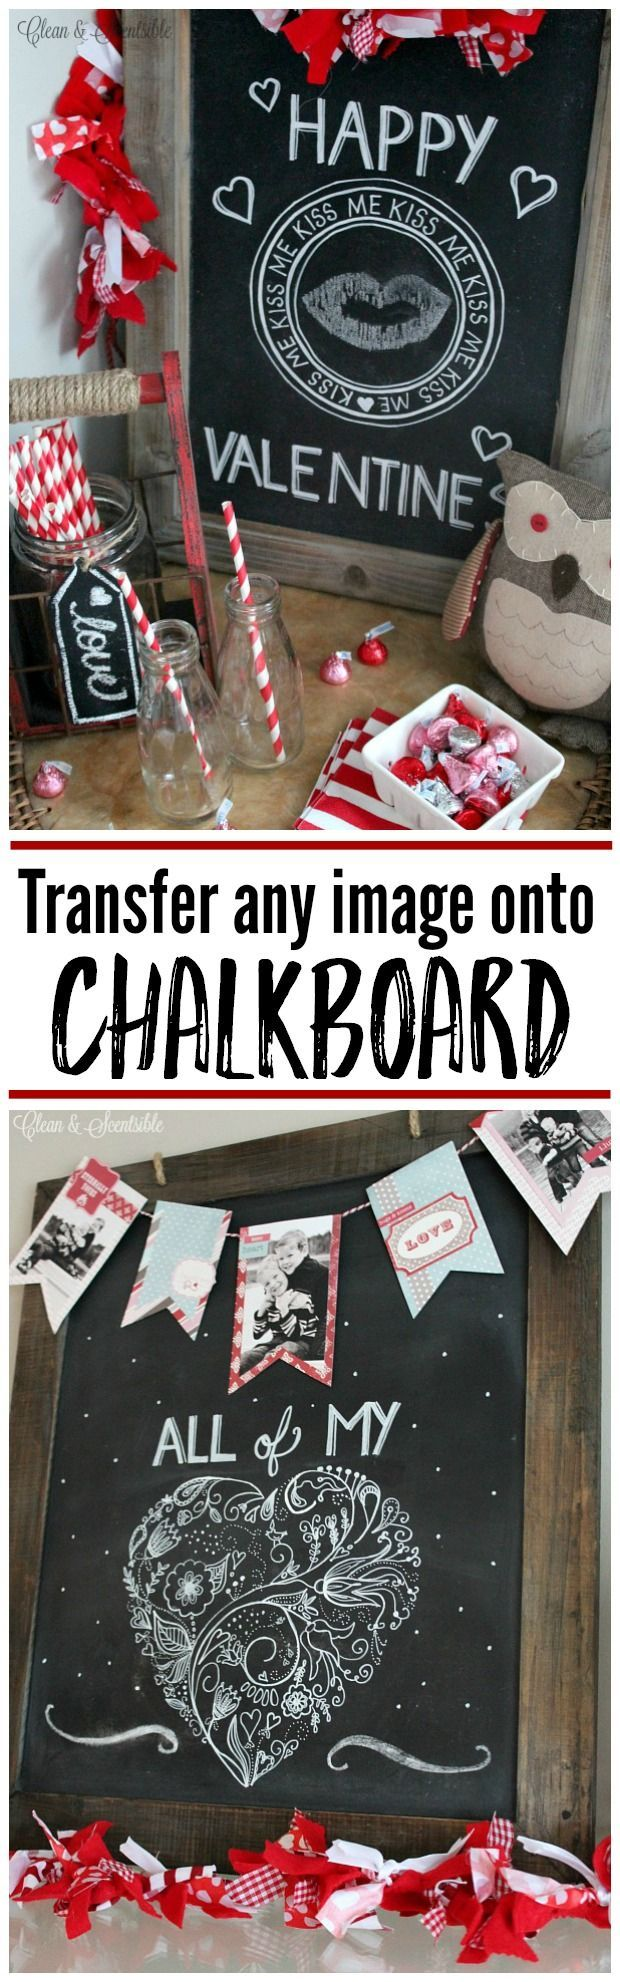 Get professional looking chalkboards with this easy tutorial on how to transfer any image onto chalkboard.